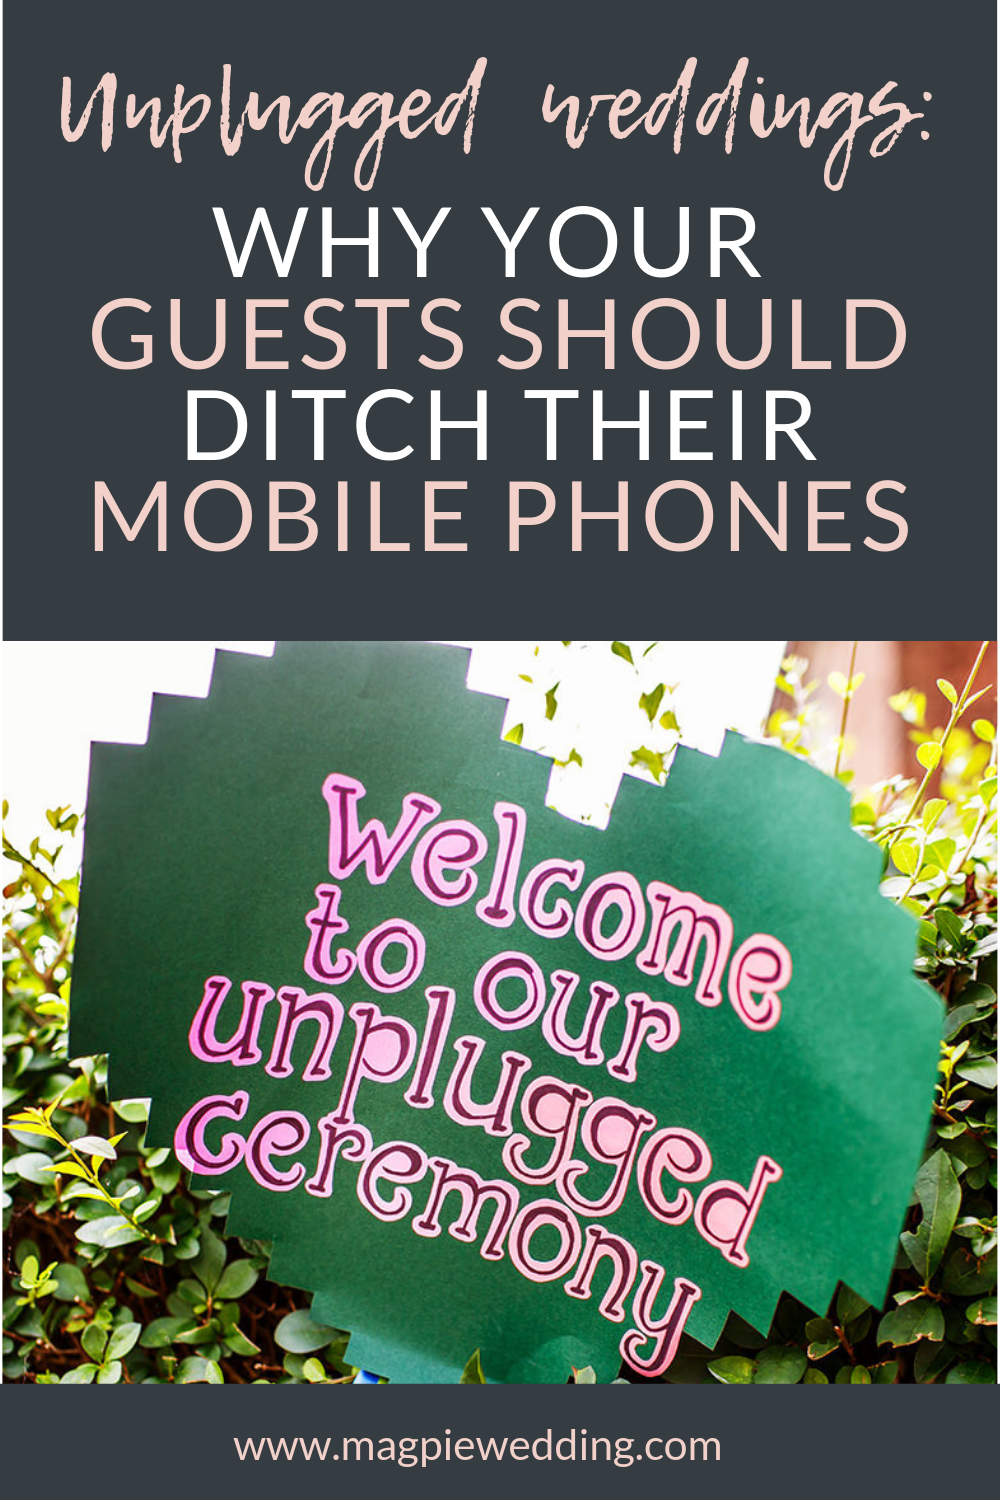 Why you should consider turning off your phones and having an unplugged wedding